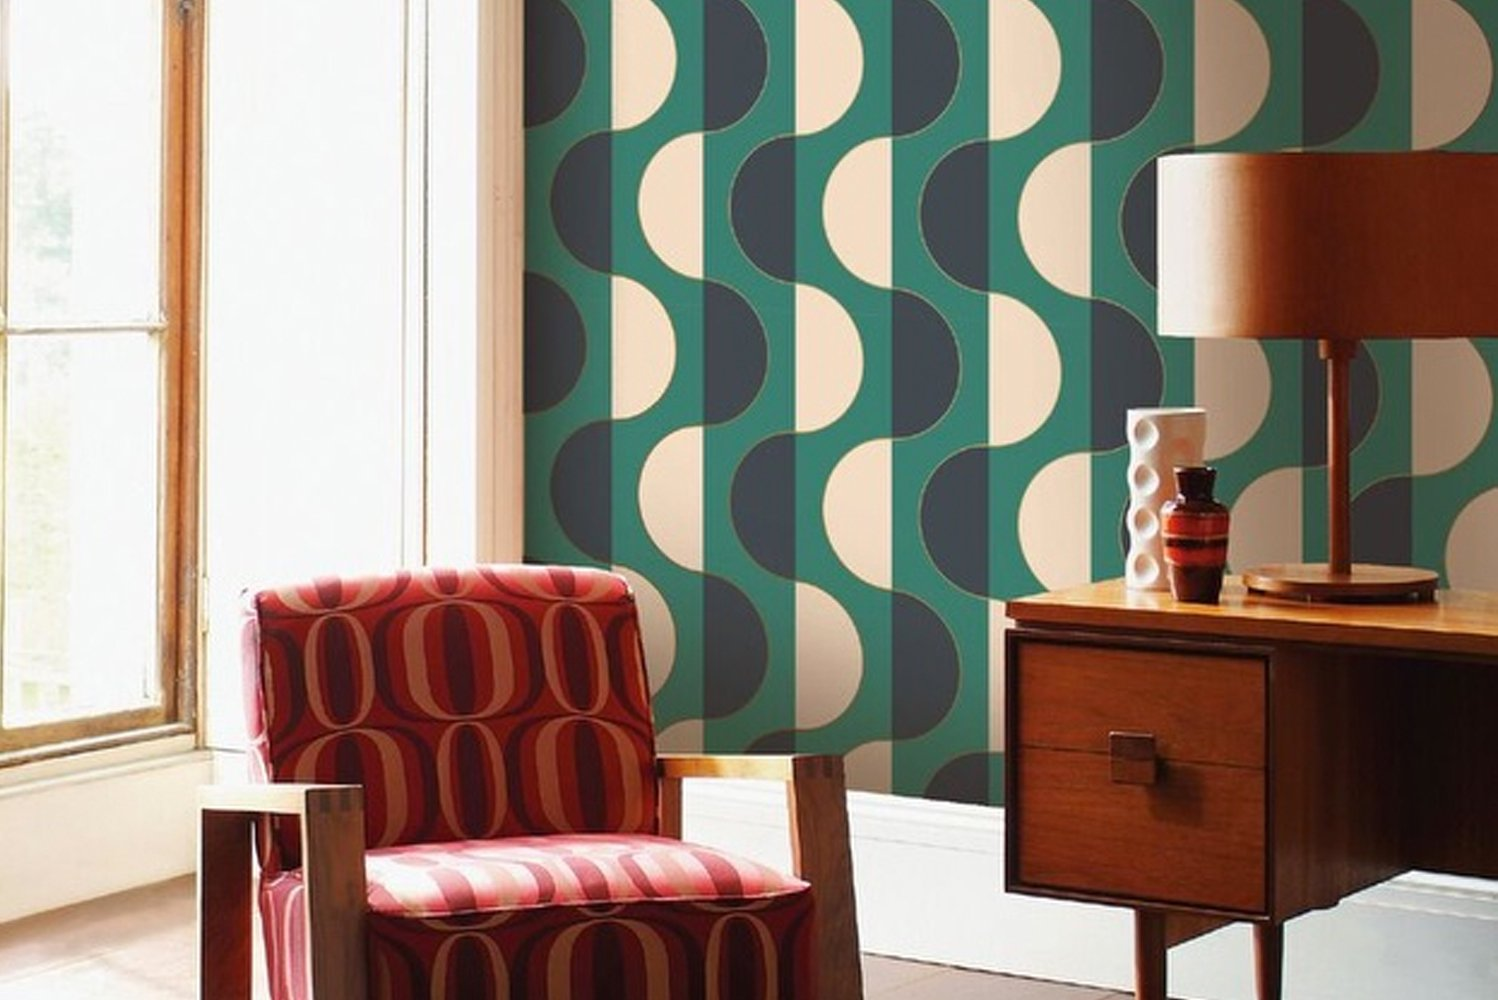 Tempaper launched self-adhesive wallcoverings.